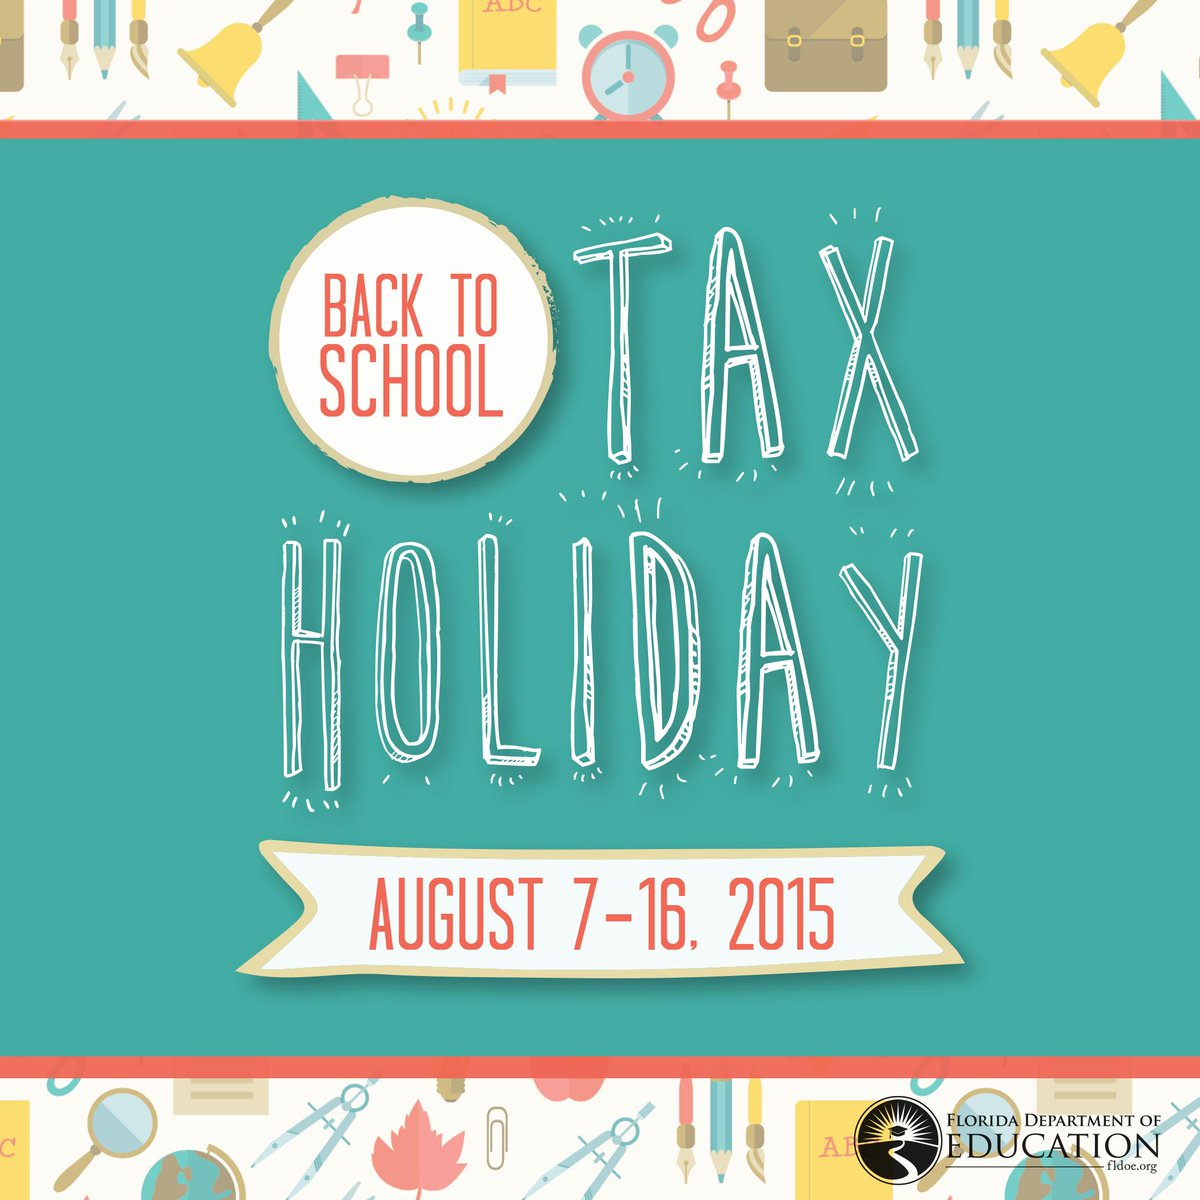 Floridians get your school supply savings during the #Back2School Sales Tax holiday Aug. 7-16! http://t.co/rkH7fKMPHr http://t.co/iSS9wDjb5Q